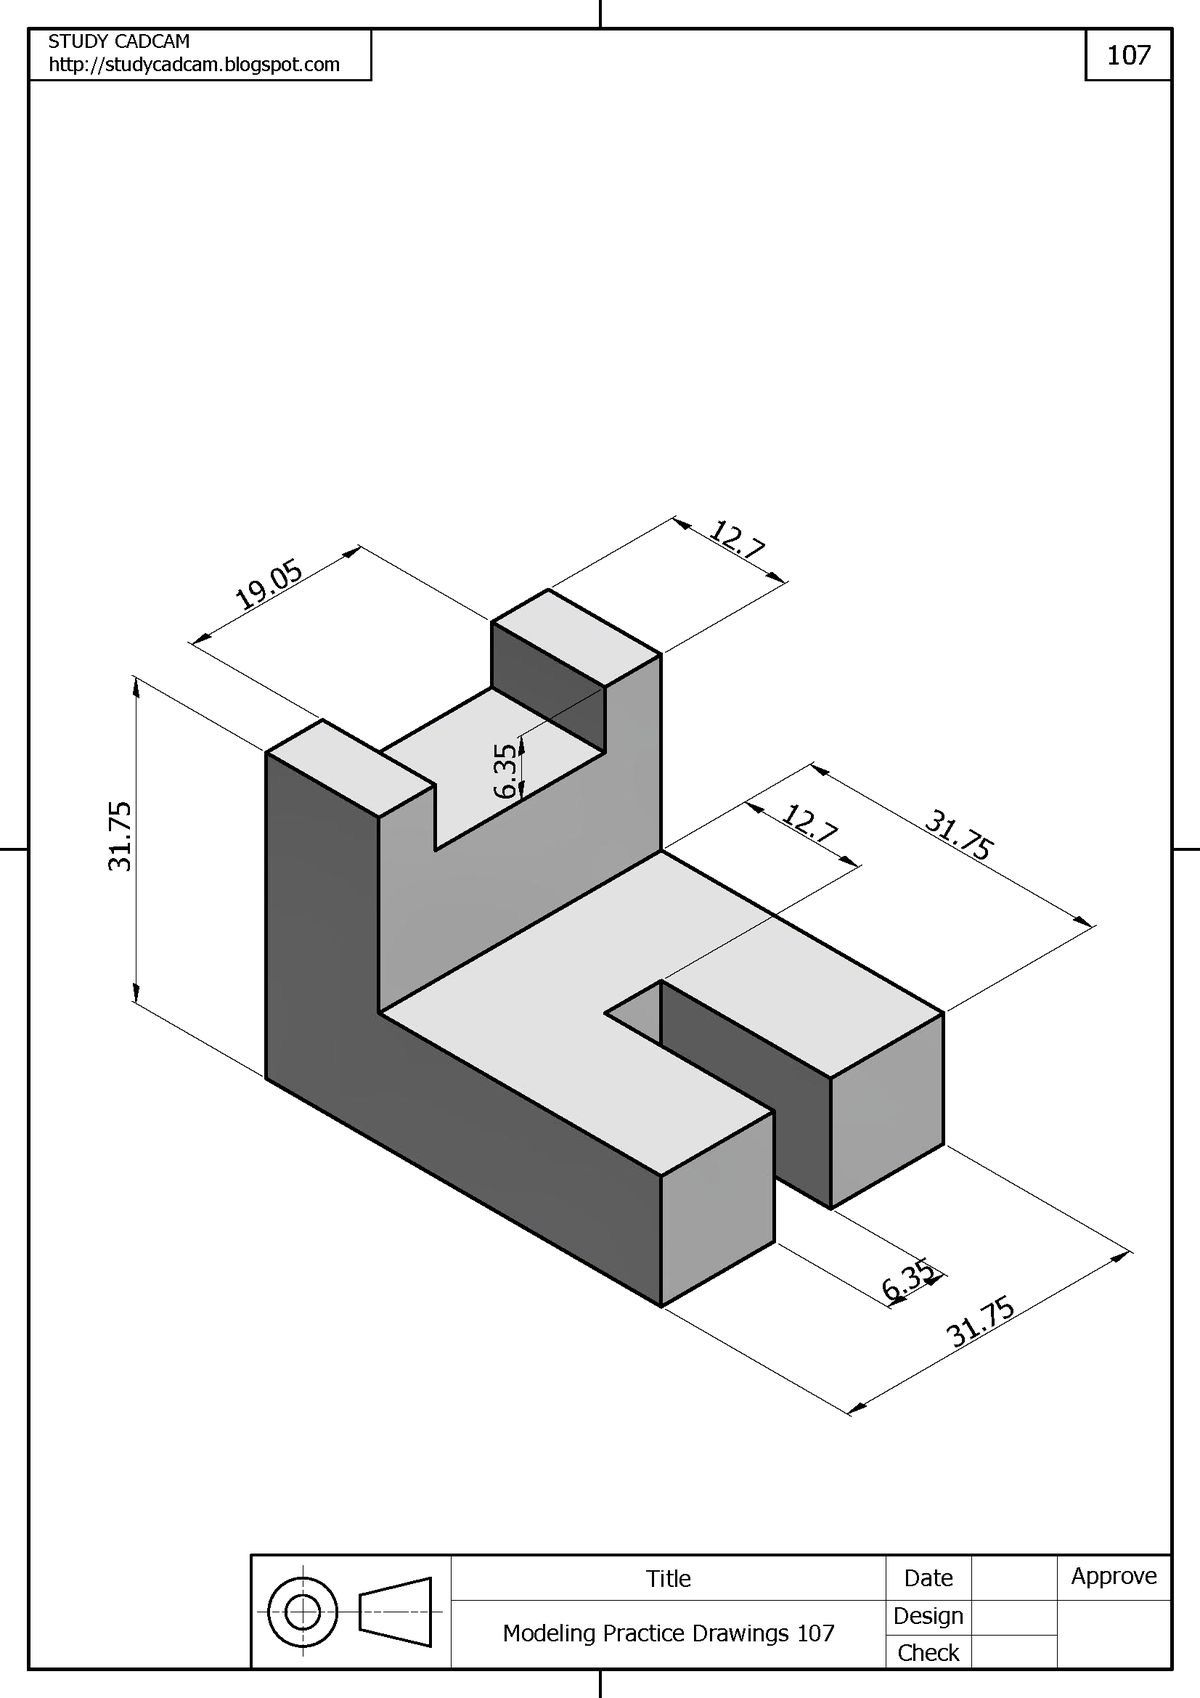 Pin By Doug Fear On My Fun With Blender 3d Software Autocad Isometric Drawing Mechanical Design Technical Drawing